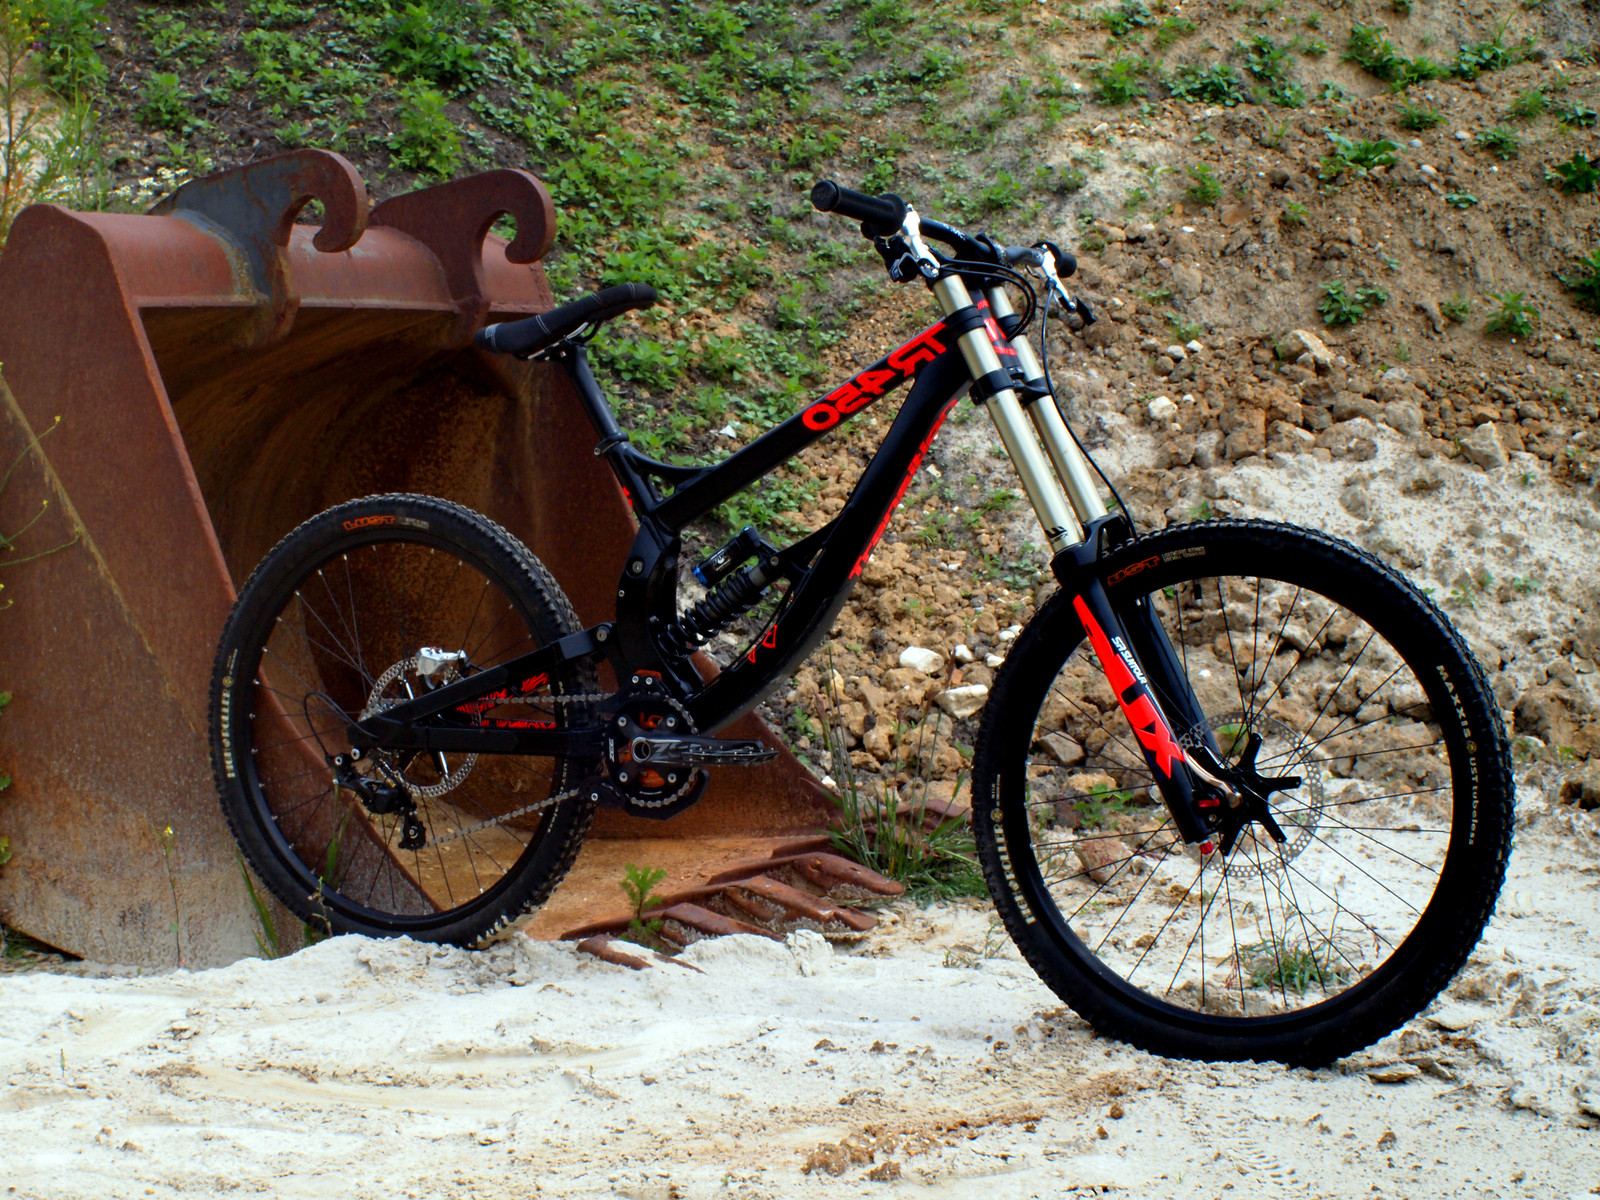 Transition TR450 - The Ax!